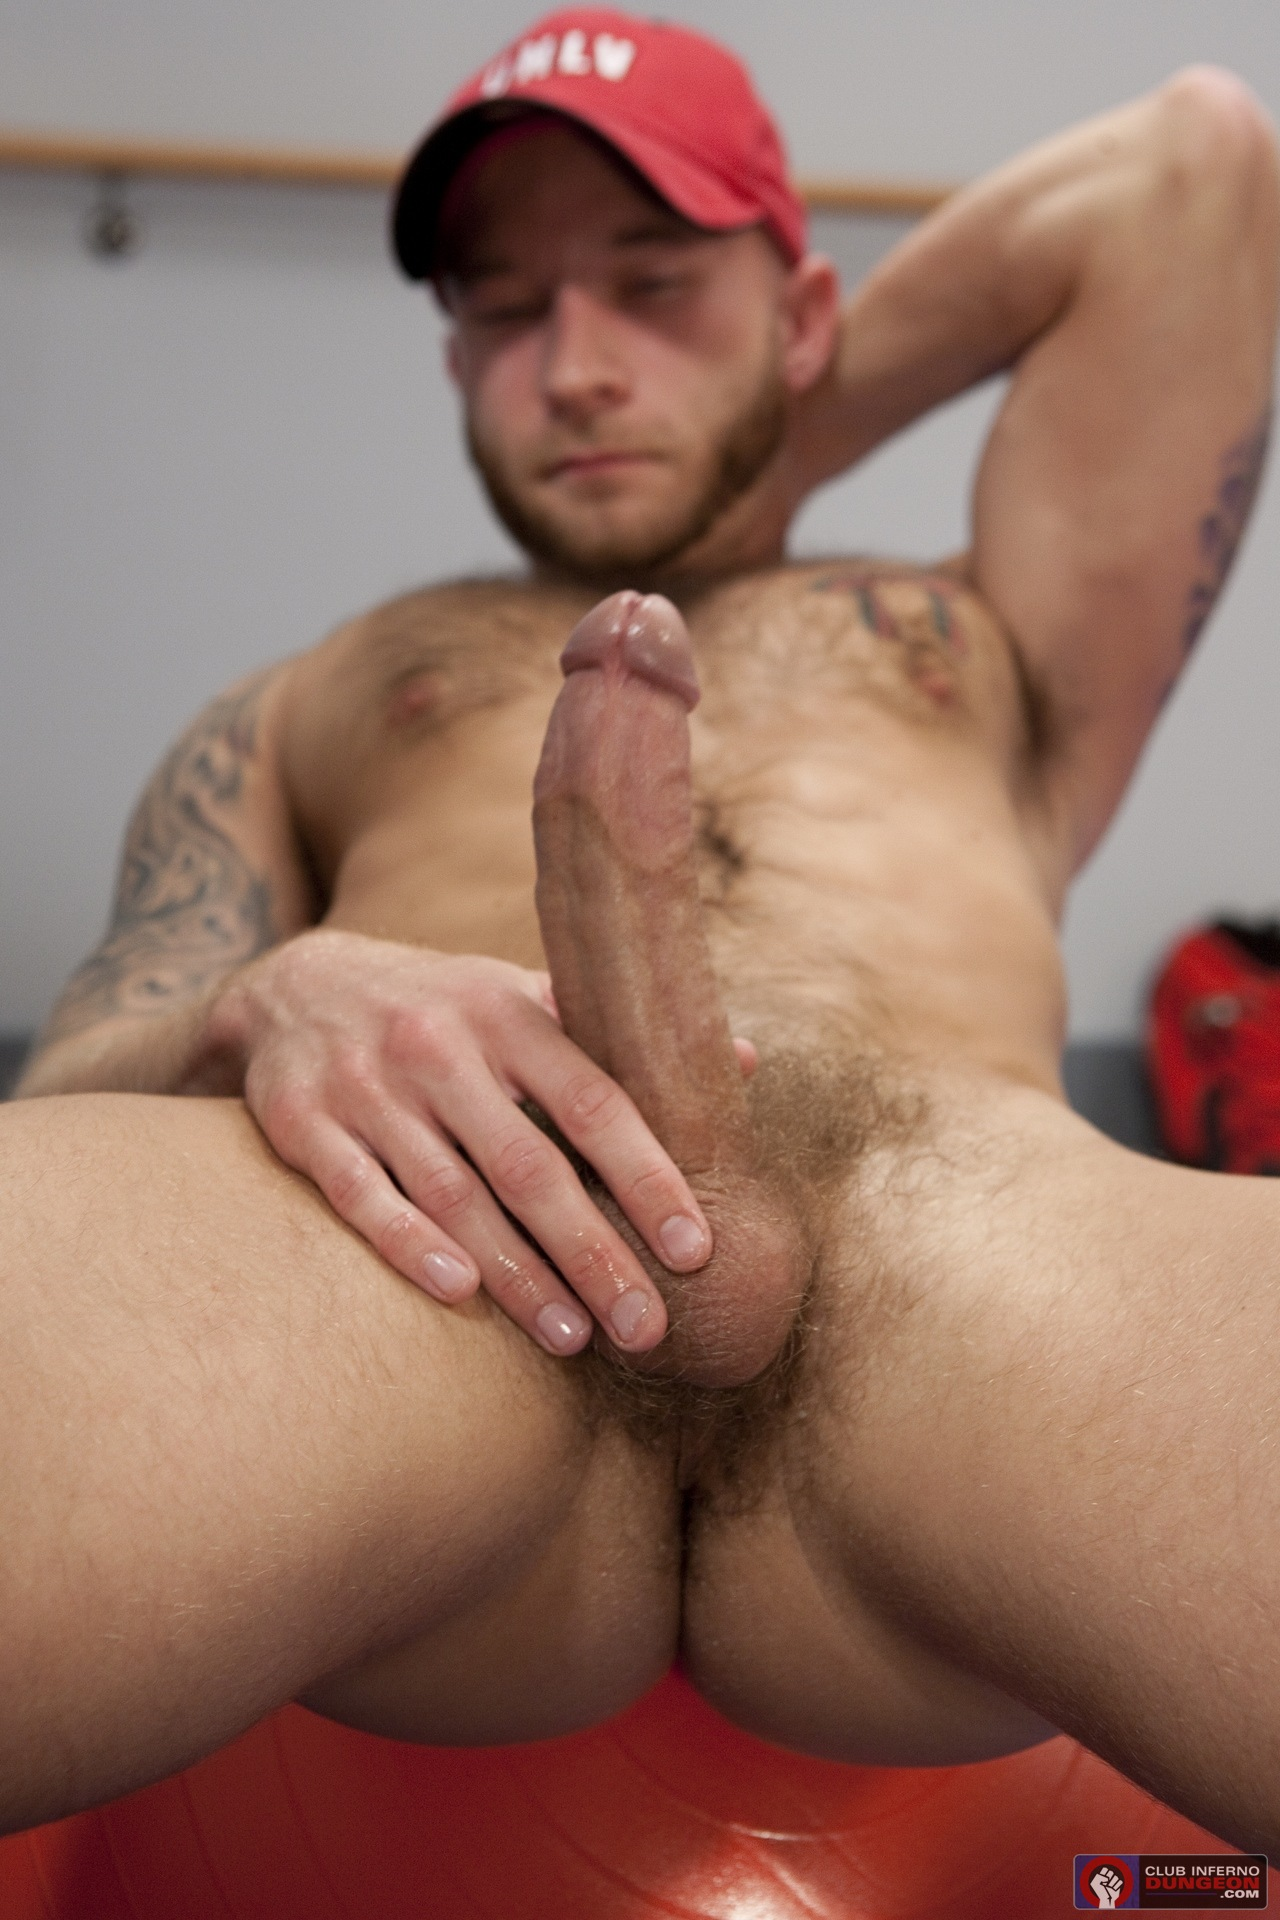 hairy links Gay porn